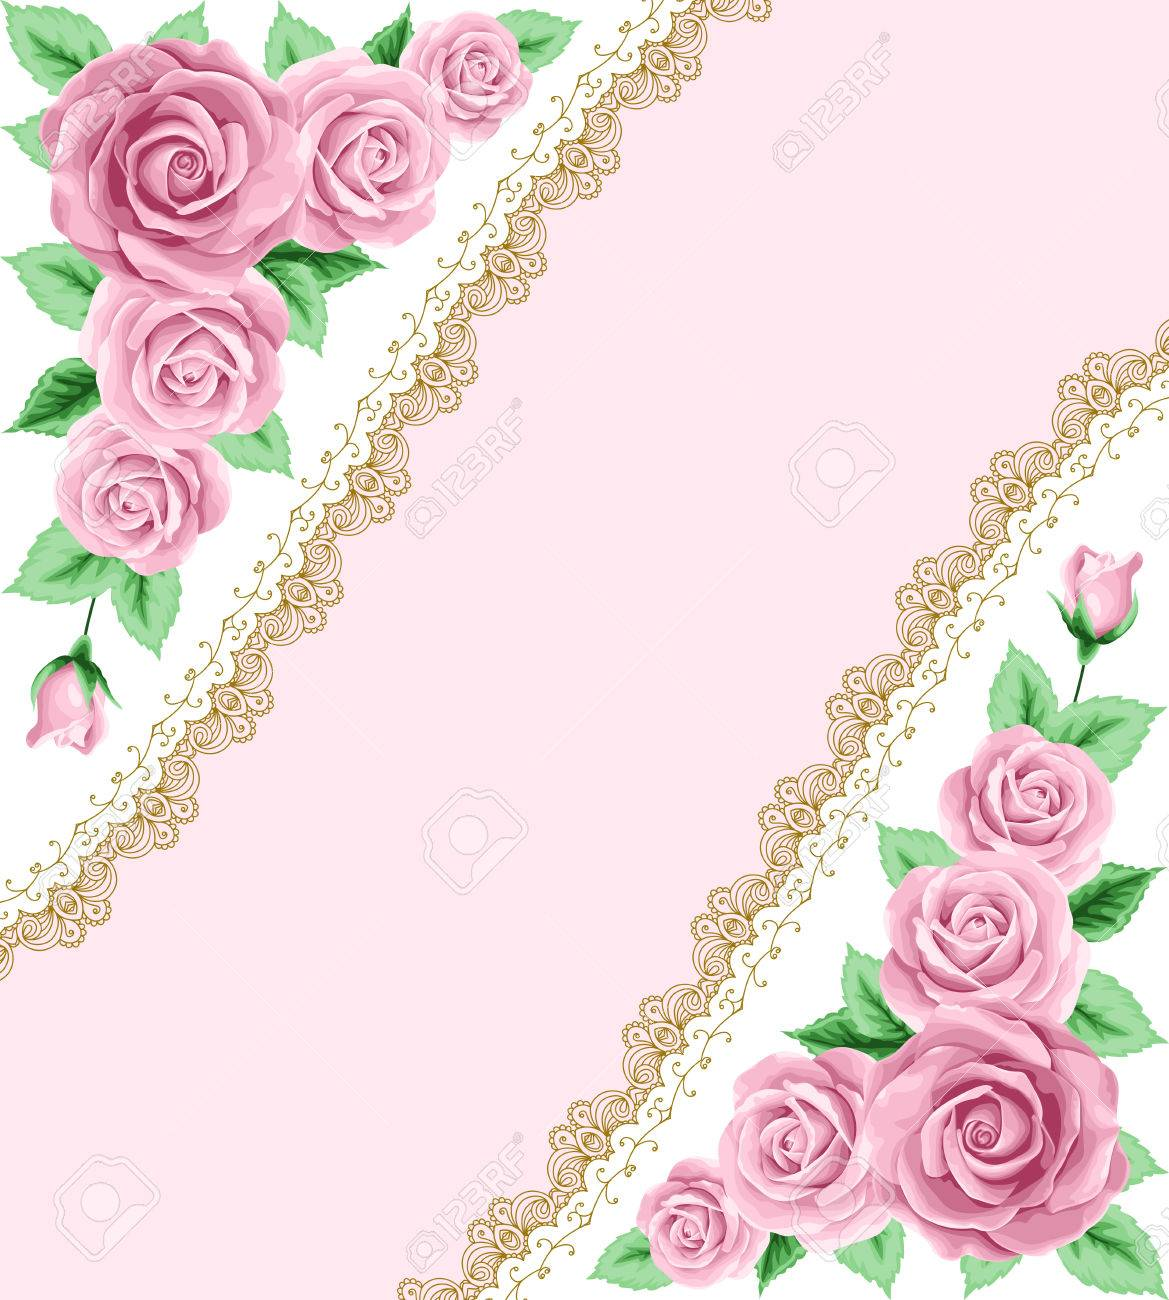 Vintage Frame With Roses And Lace Frame Place For Your Text